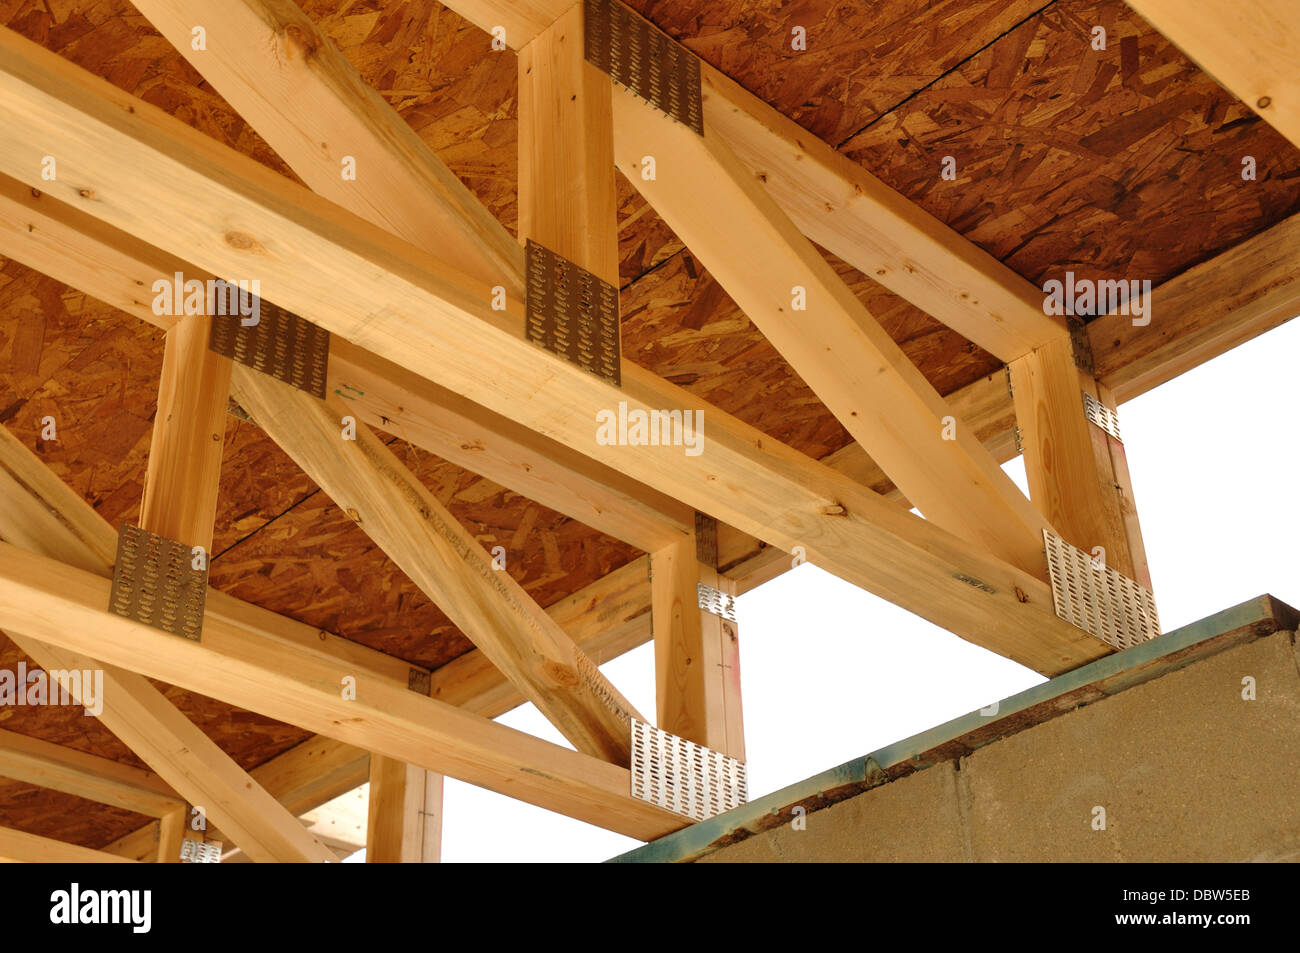 20 residential floor joist spacing building code for Floor joist construction